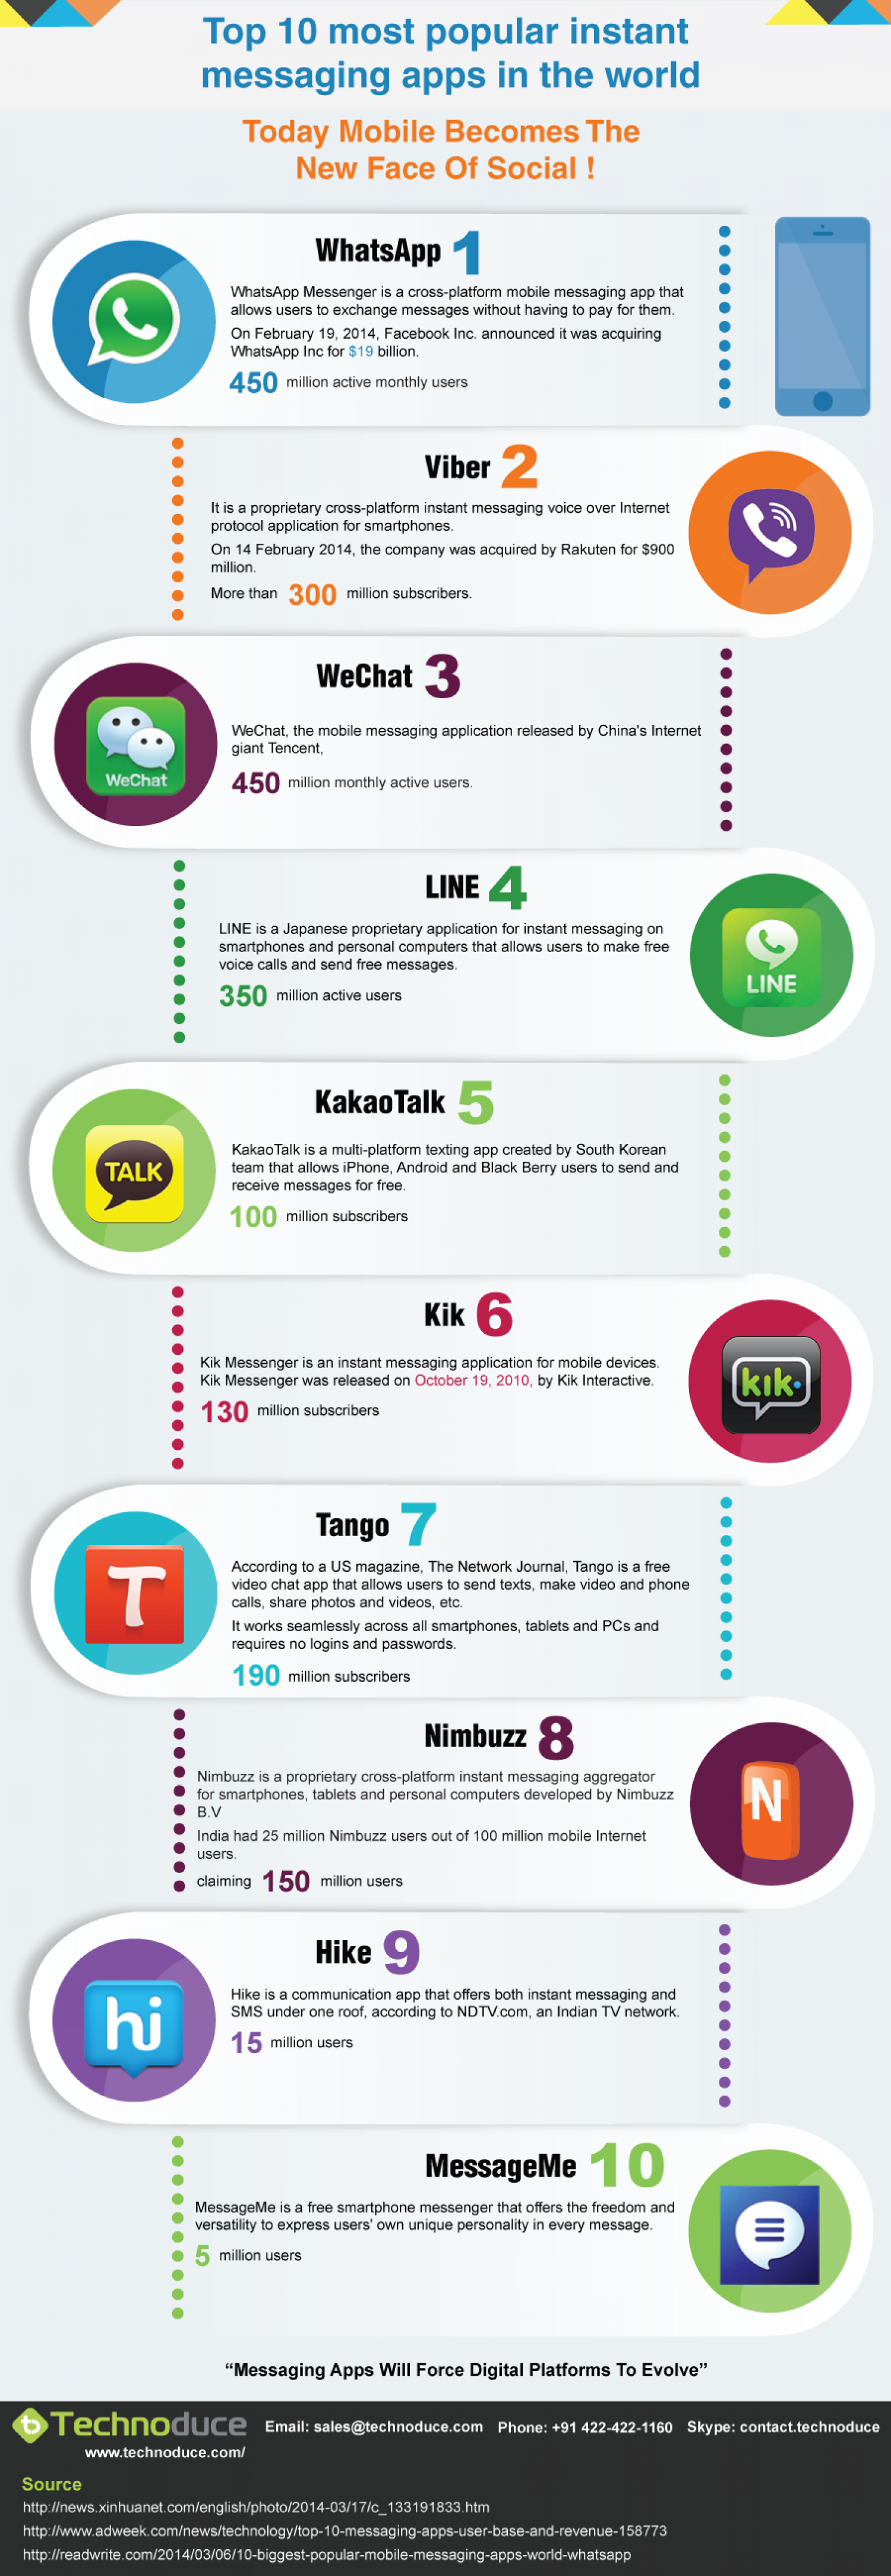 Top 10 Instant Messaging Apps Infographic